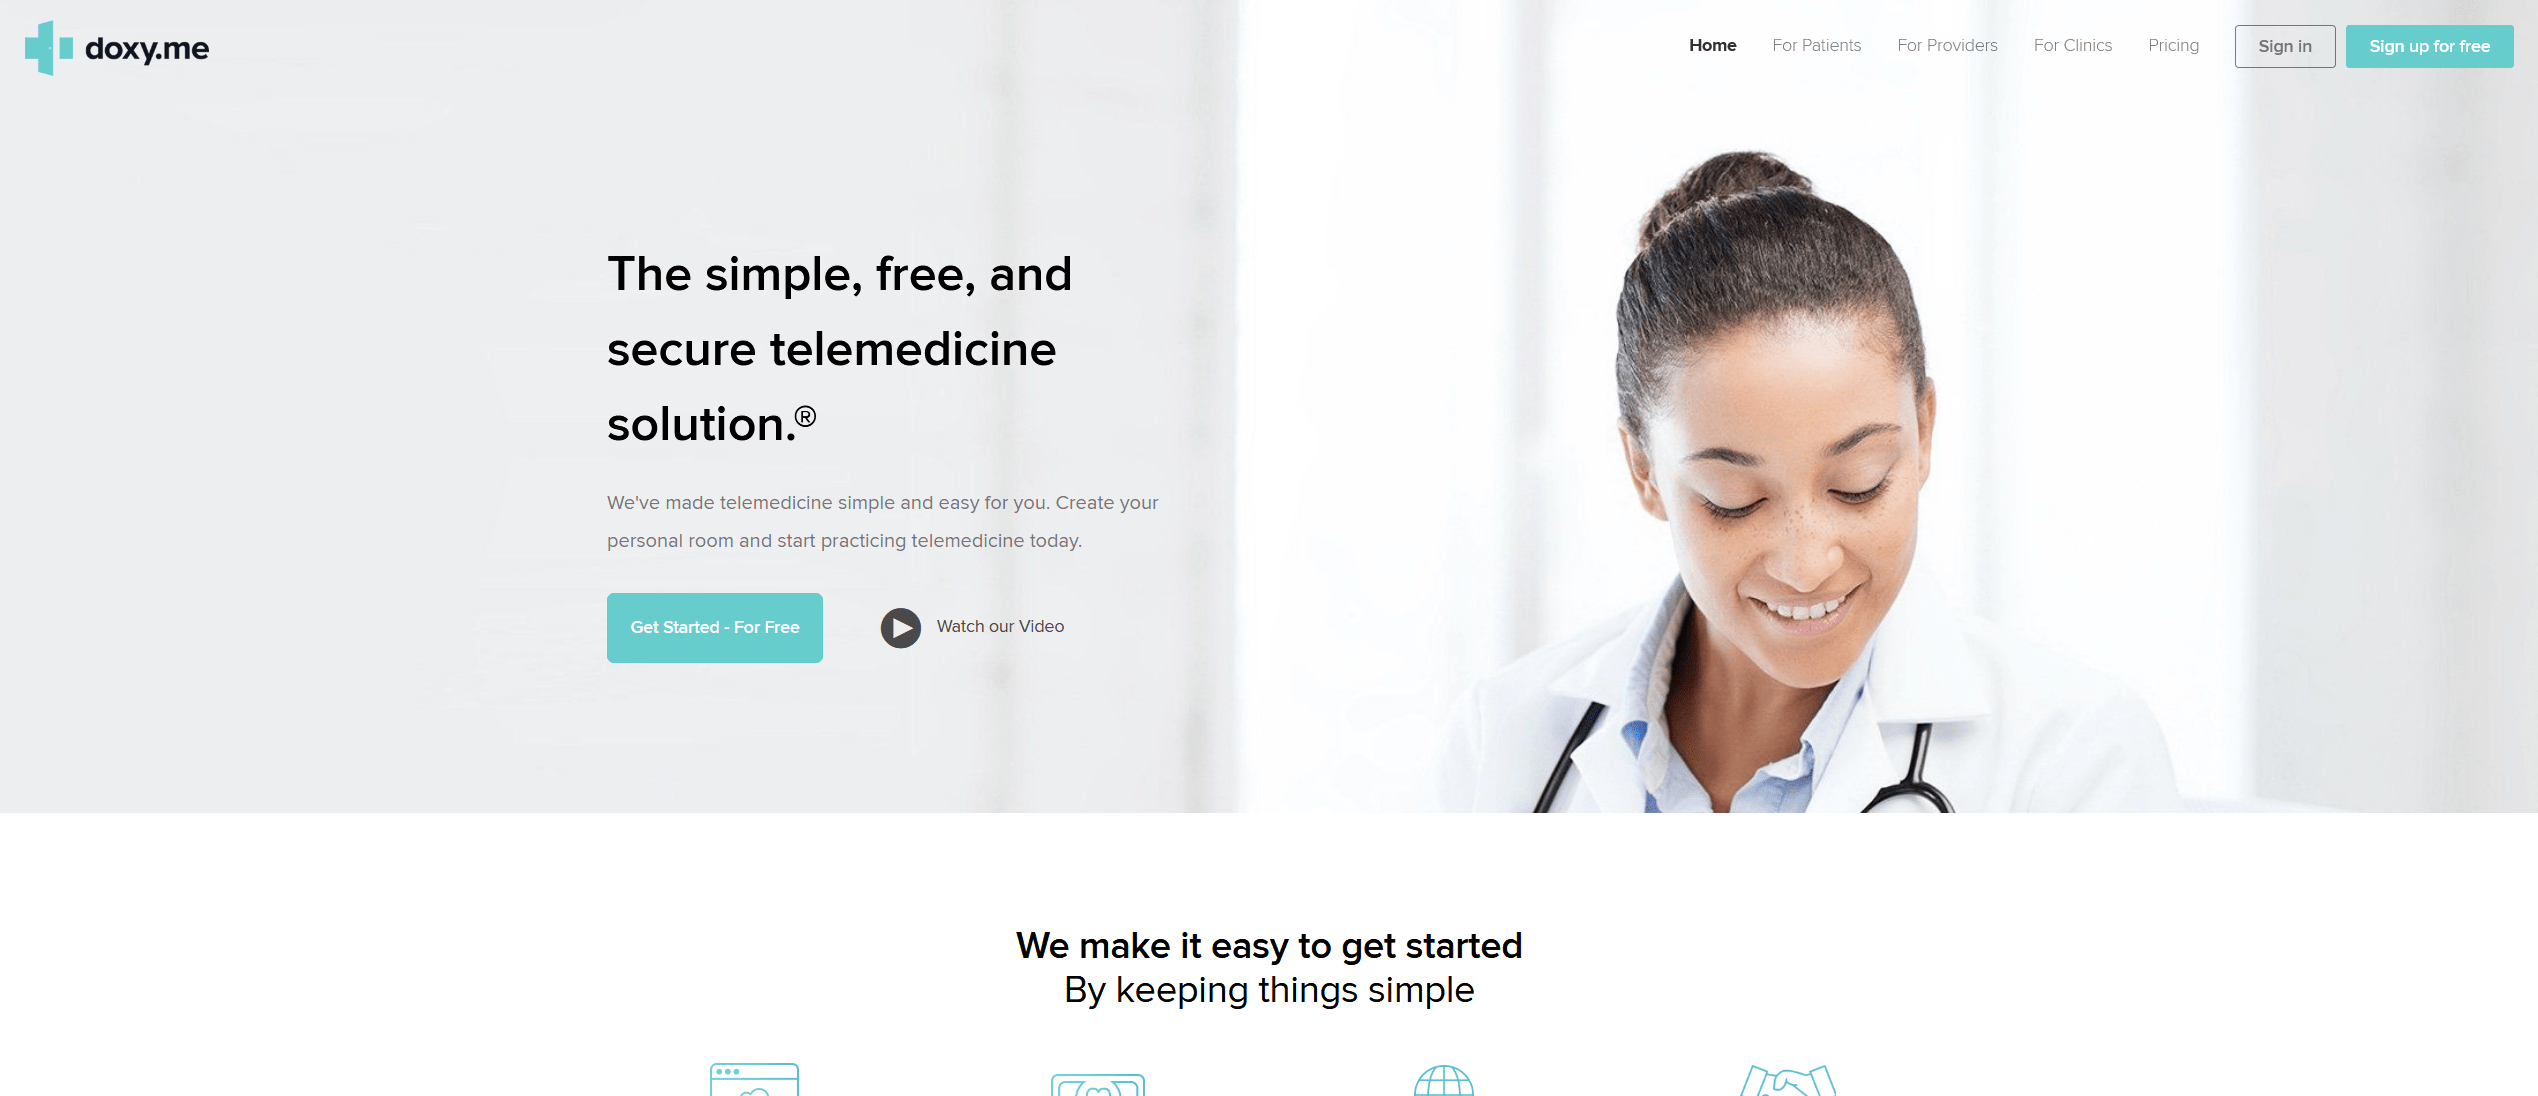 Free Telemedicine Software That's HIPAA Compliant - Doxy.me